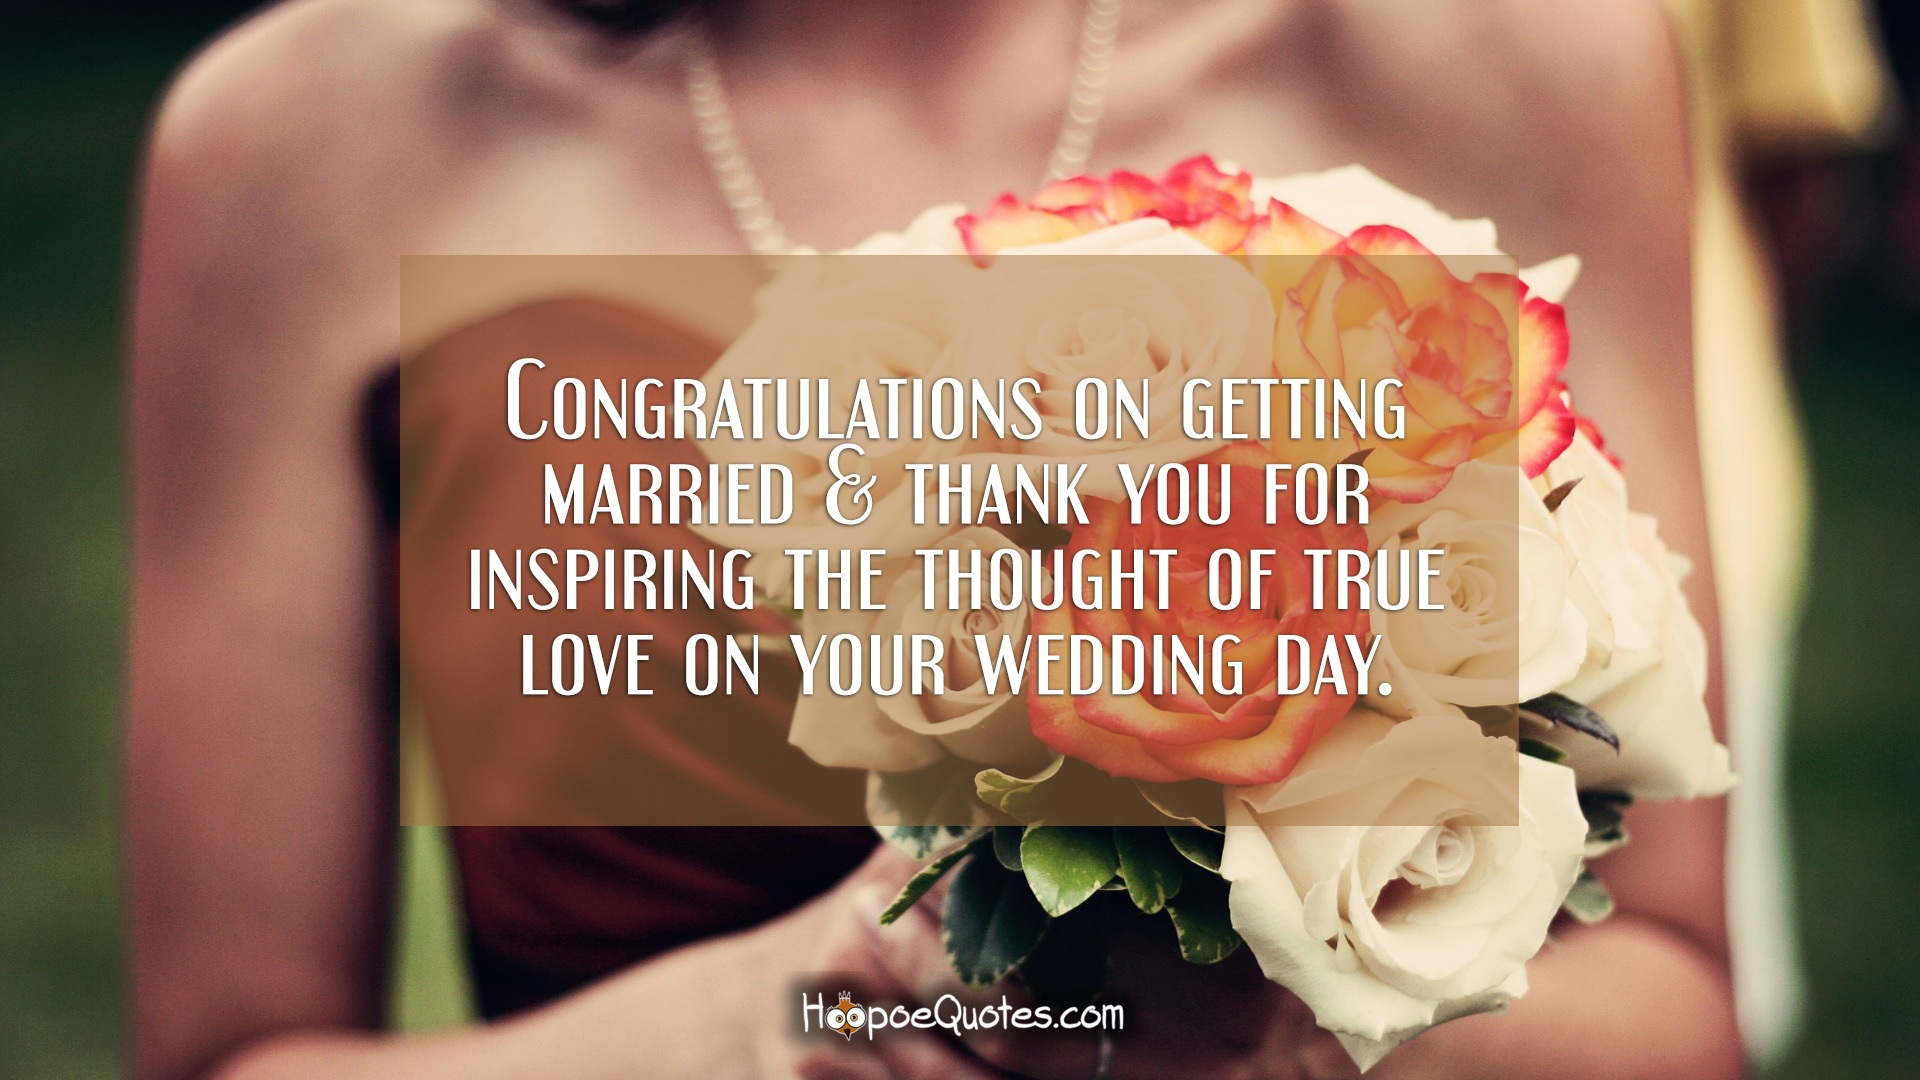 Congratulations On Getting Married Thank You For Inspiring The